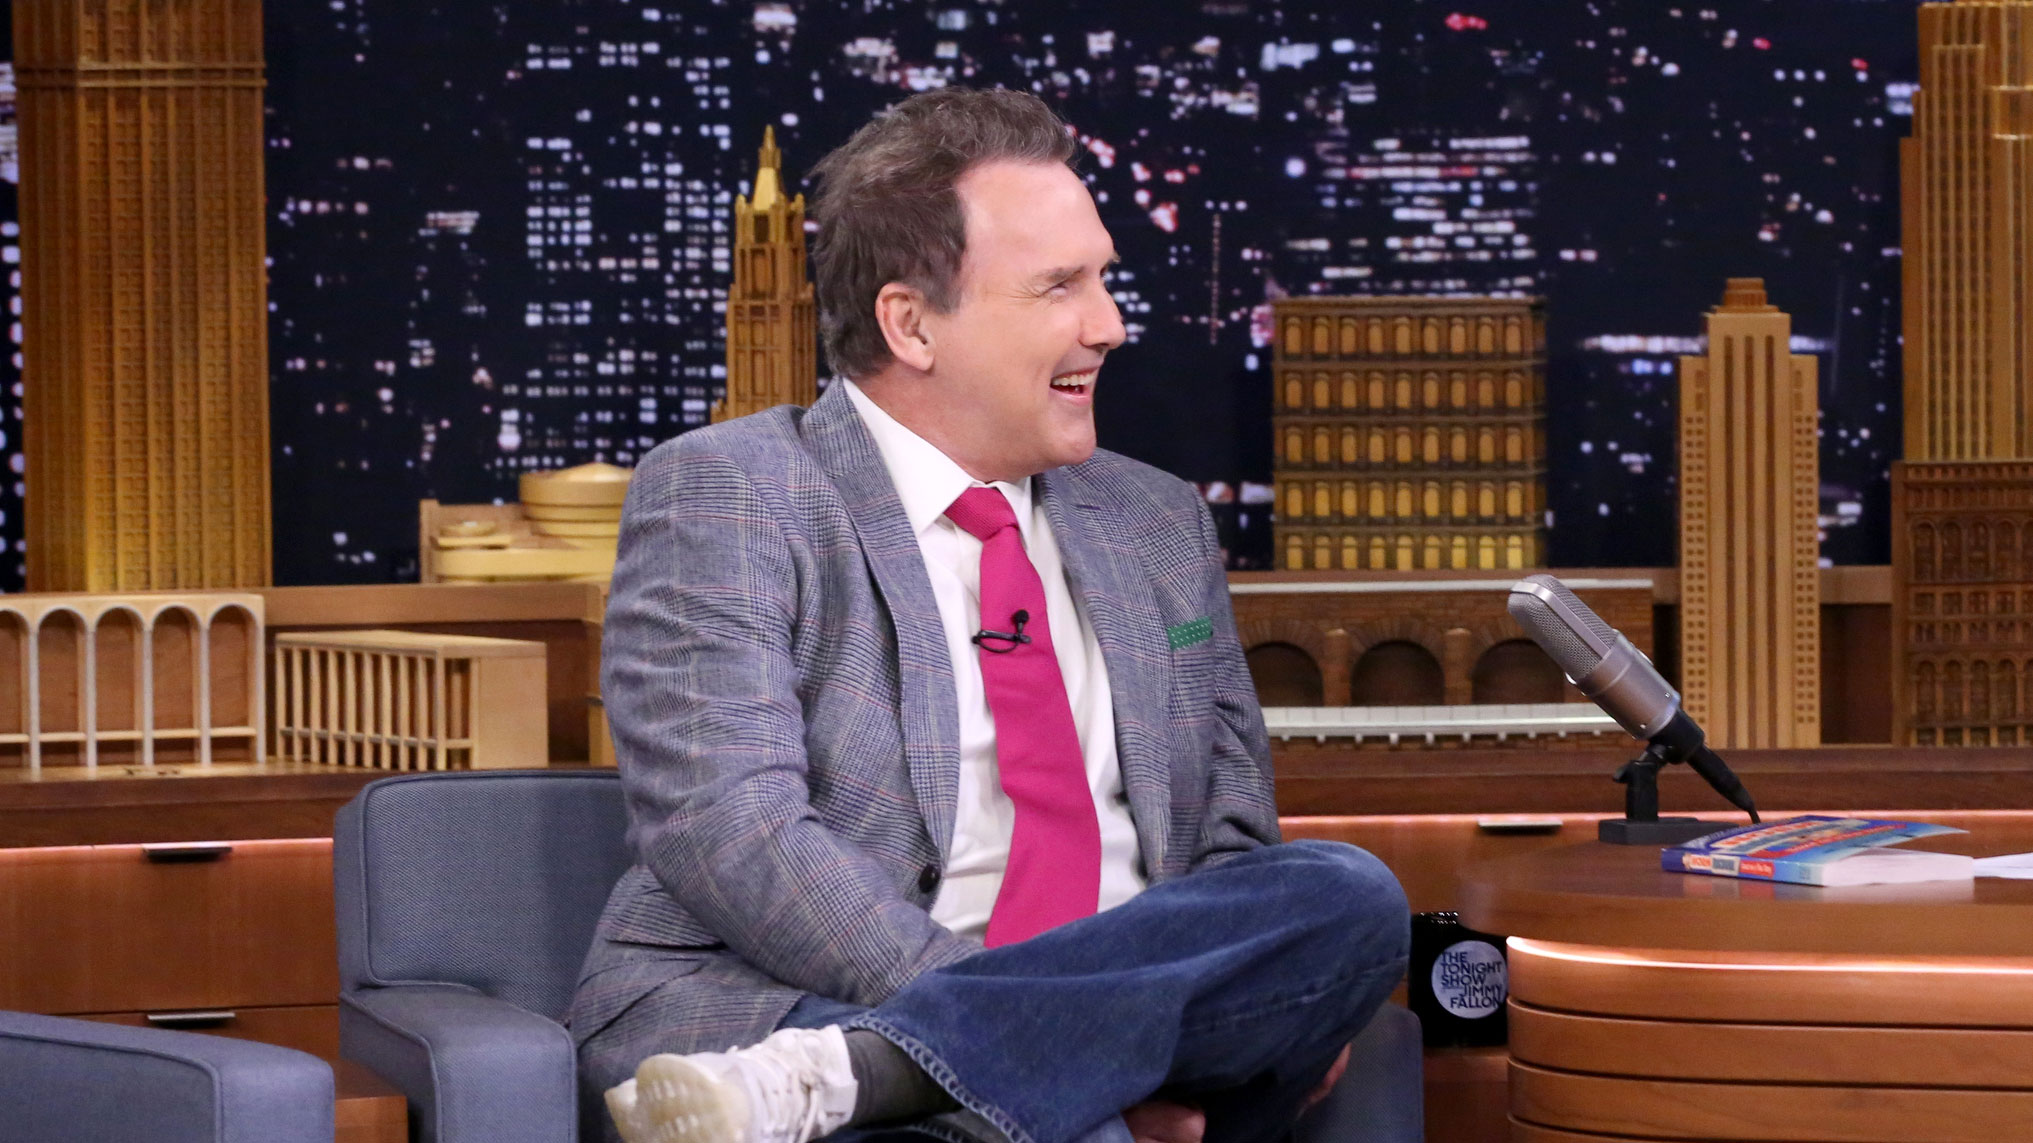 Norm Macdonald Fooled The New York Times into Thinking His Book Is True